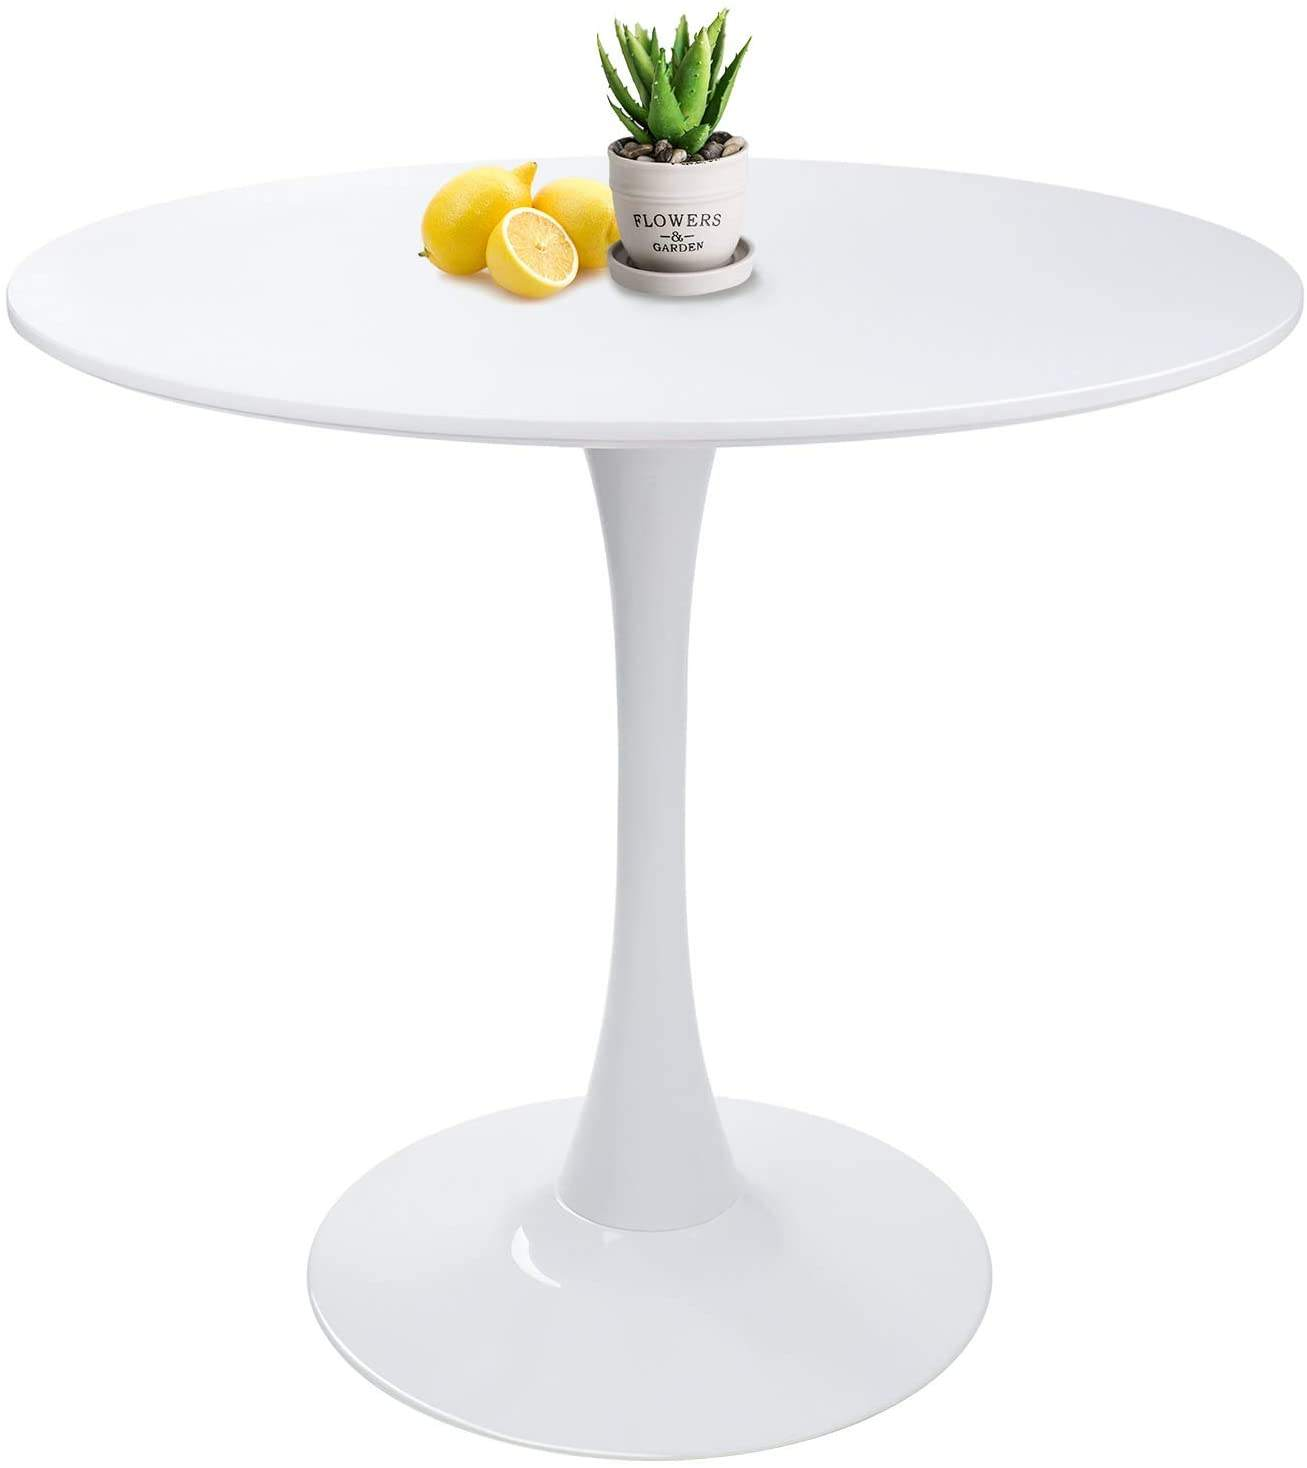 Combohome White Mid-Century Tulip Pedestal Leisure Table White Modern Round Dining Side Table Table